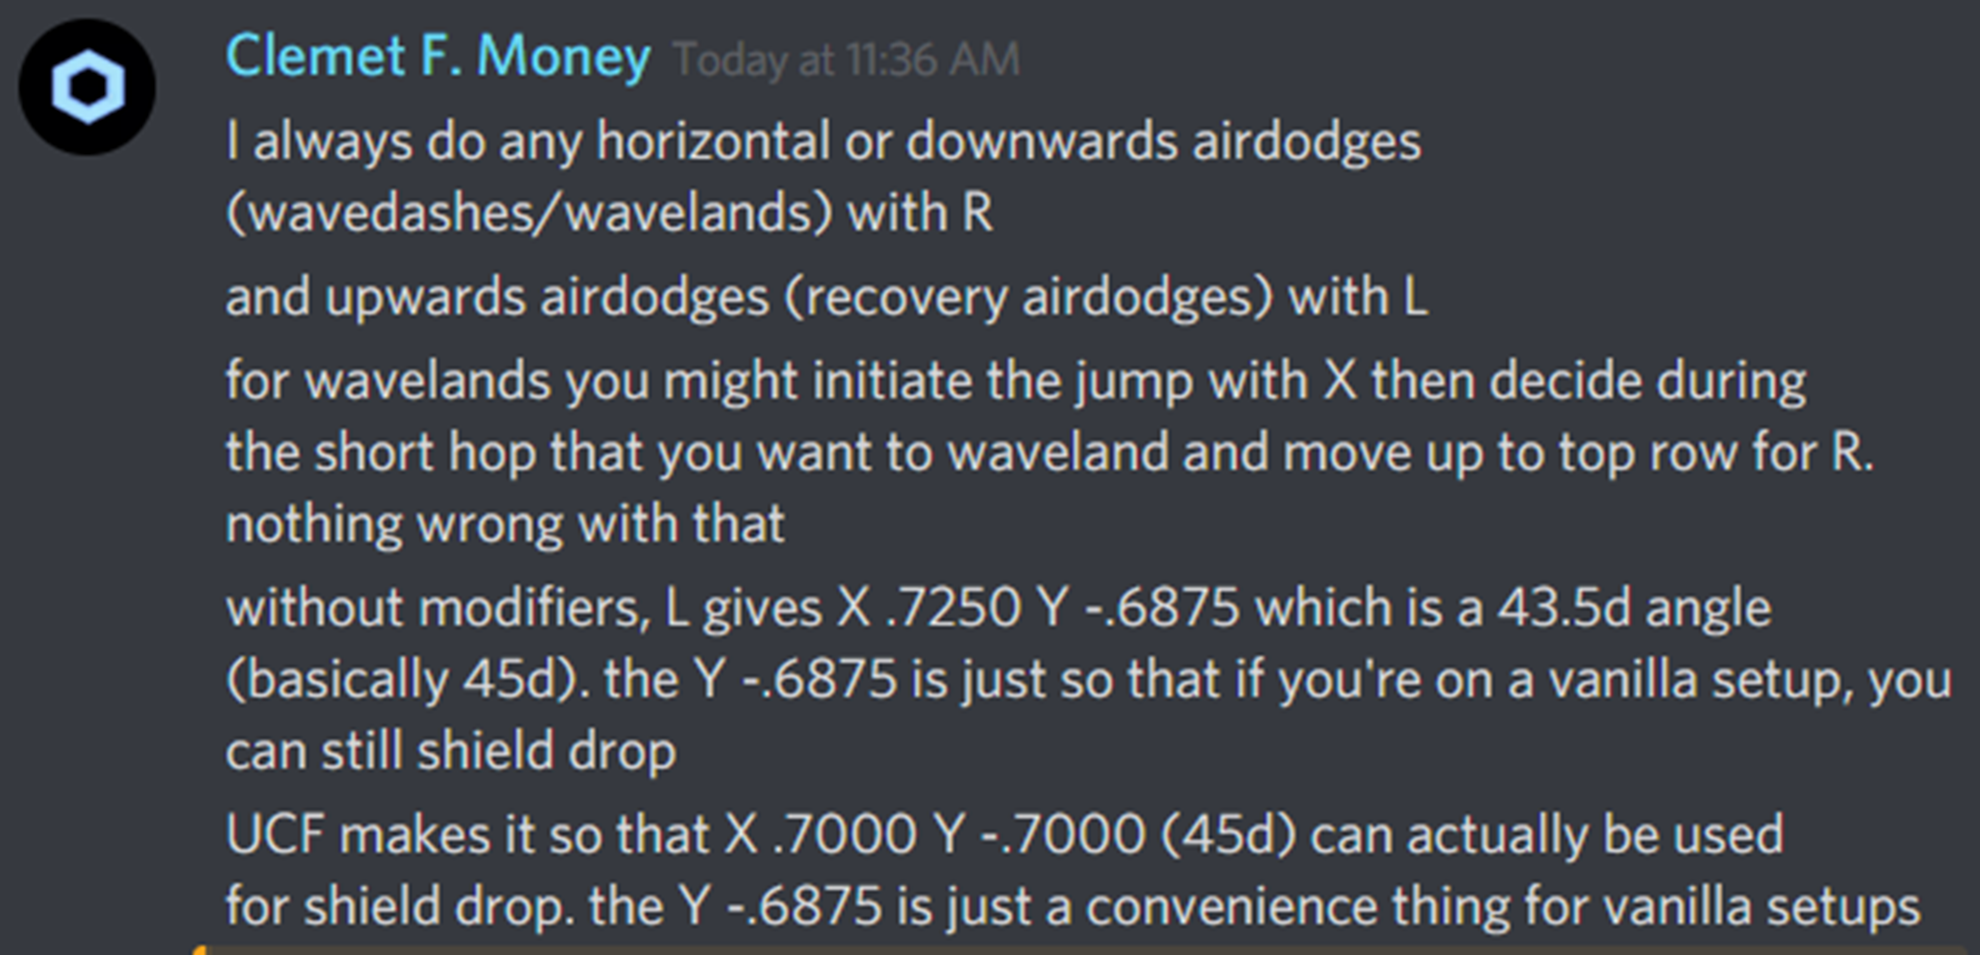 Hax expanding on why he lands with R